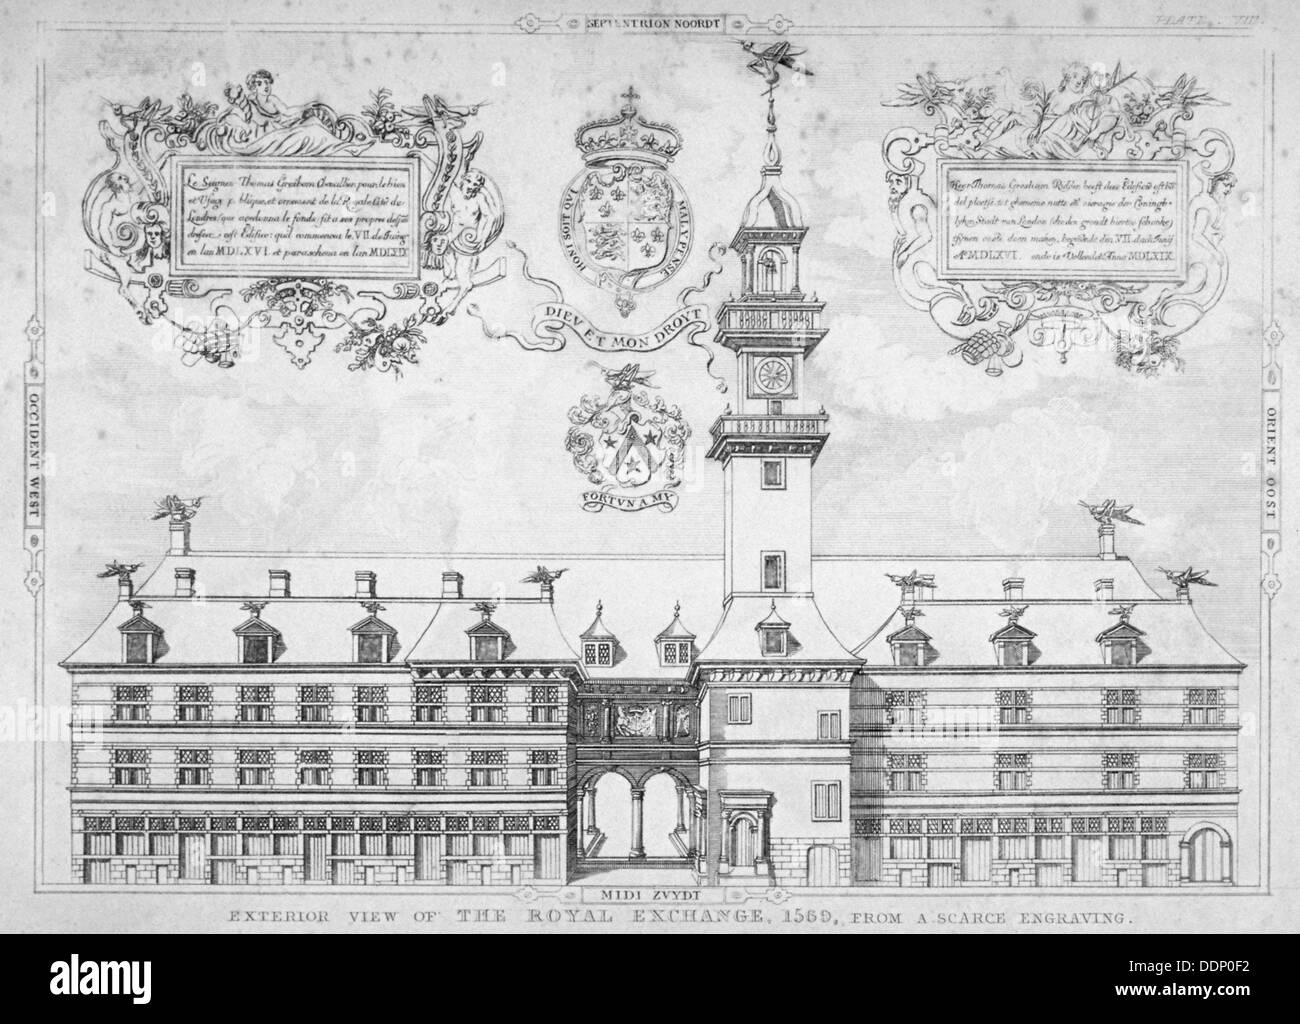 View of the Royal Exchange with coats of arms above, City of London, 1569.                           Artist: Anon - Stock Image